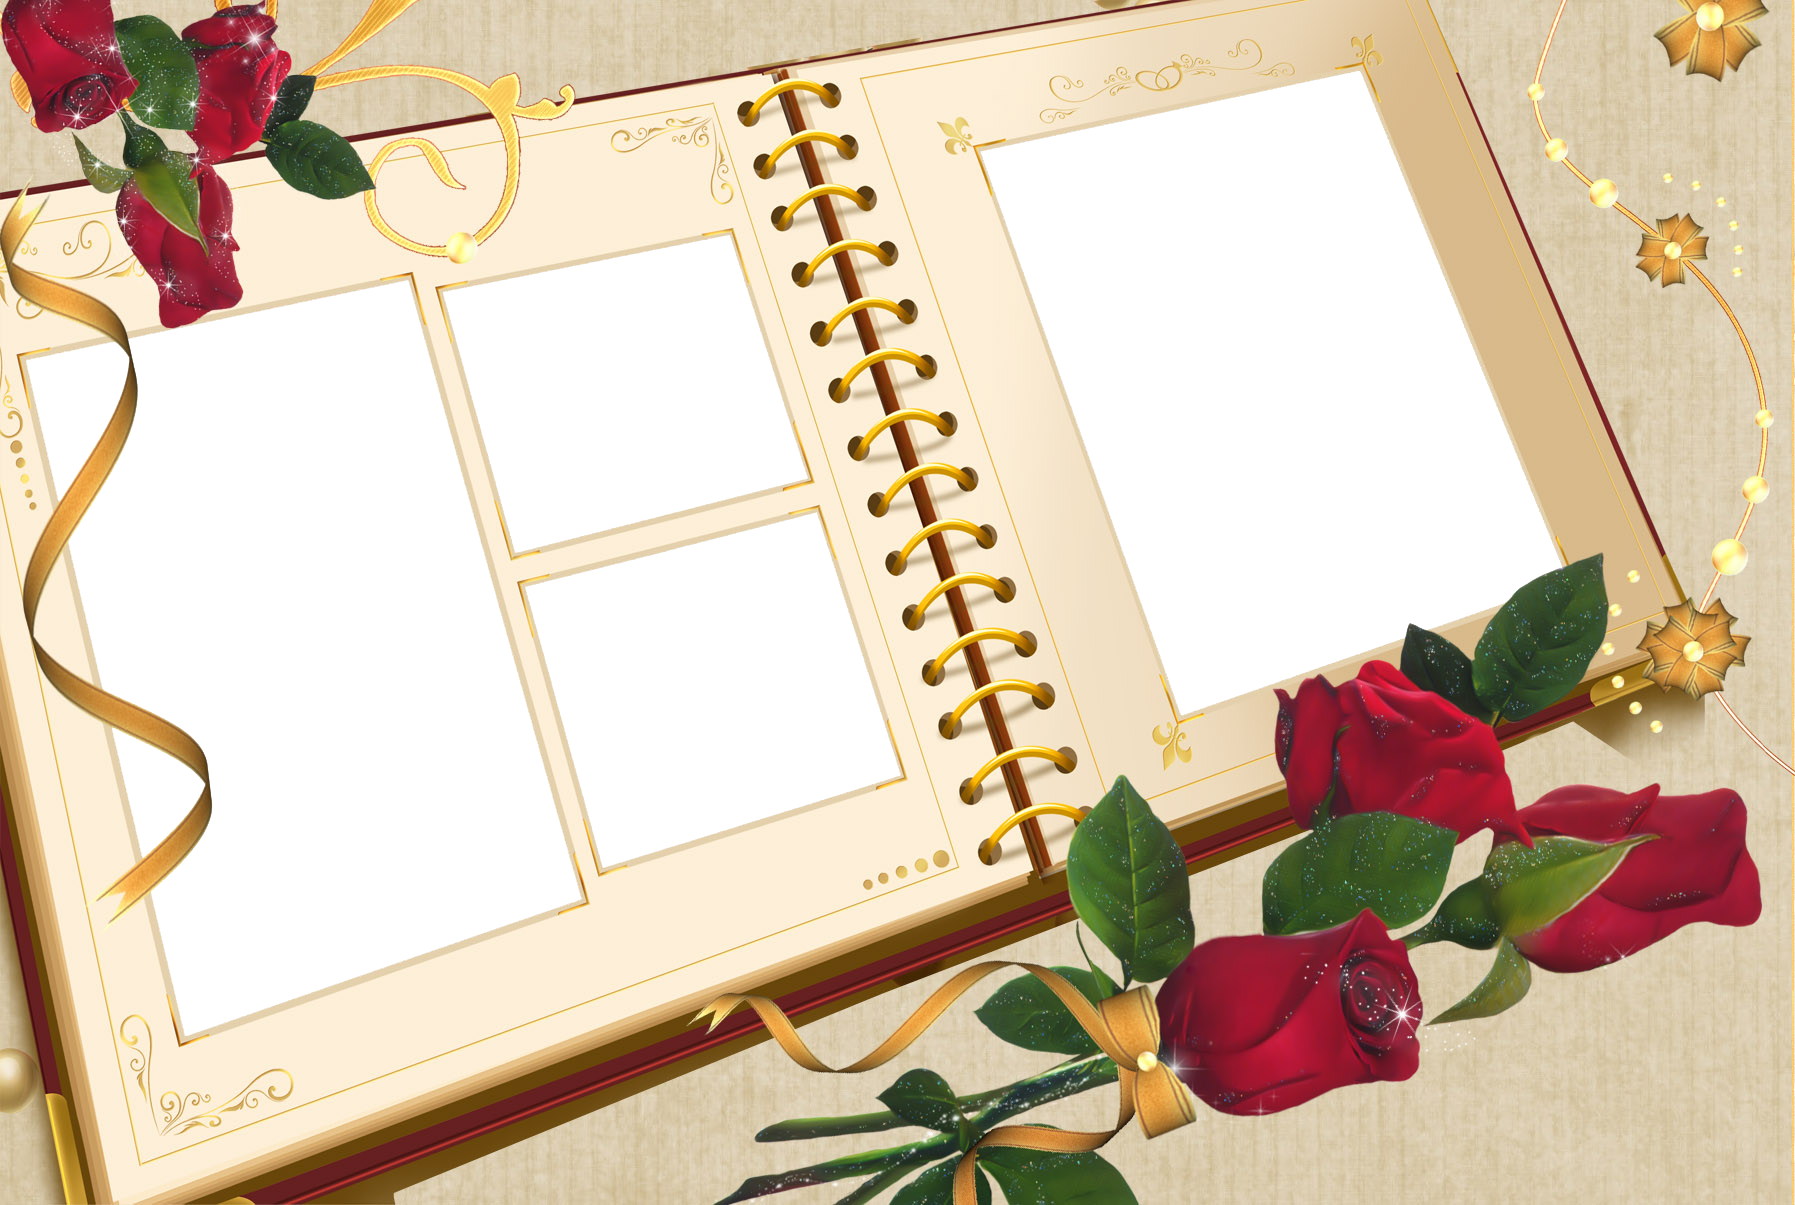 Large Transparent Album Frame with Roses.